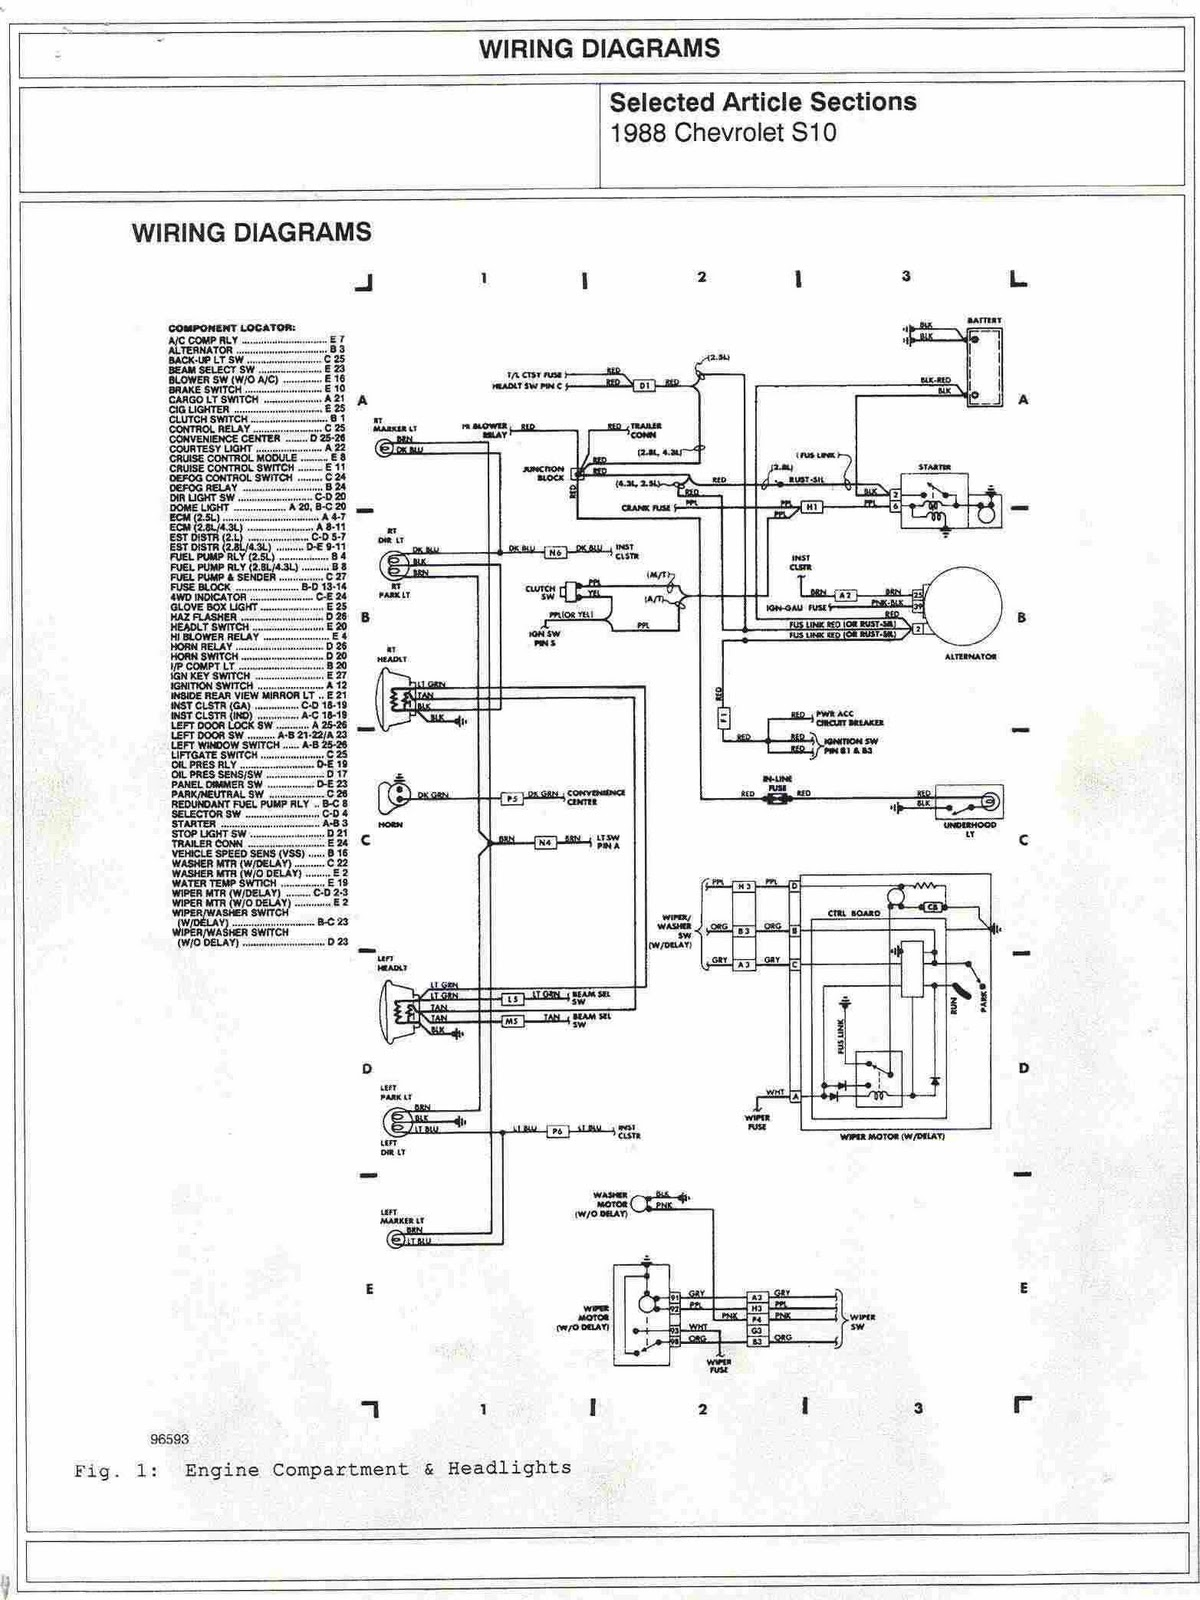 1988+Chevrolet+S10+Engine+Compartment+and+Headlights+Wiring+Diagrams 1990 s10 wiring diagram 1992 s10 wiring diagram \u2022 wiring diagrams 86 s10 wiring diagram at suagrazia.org